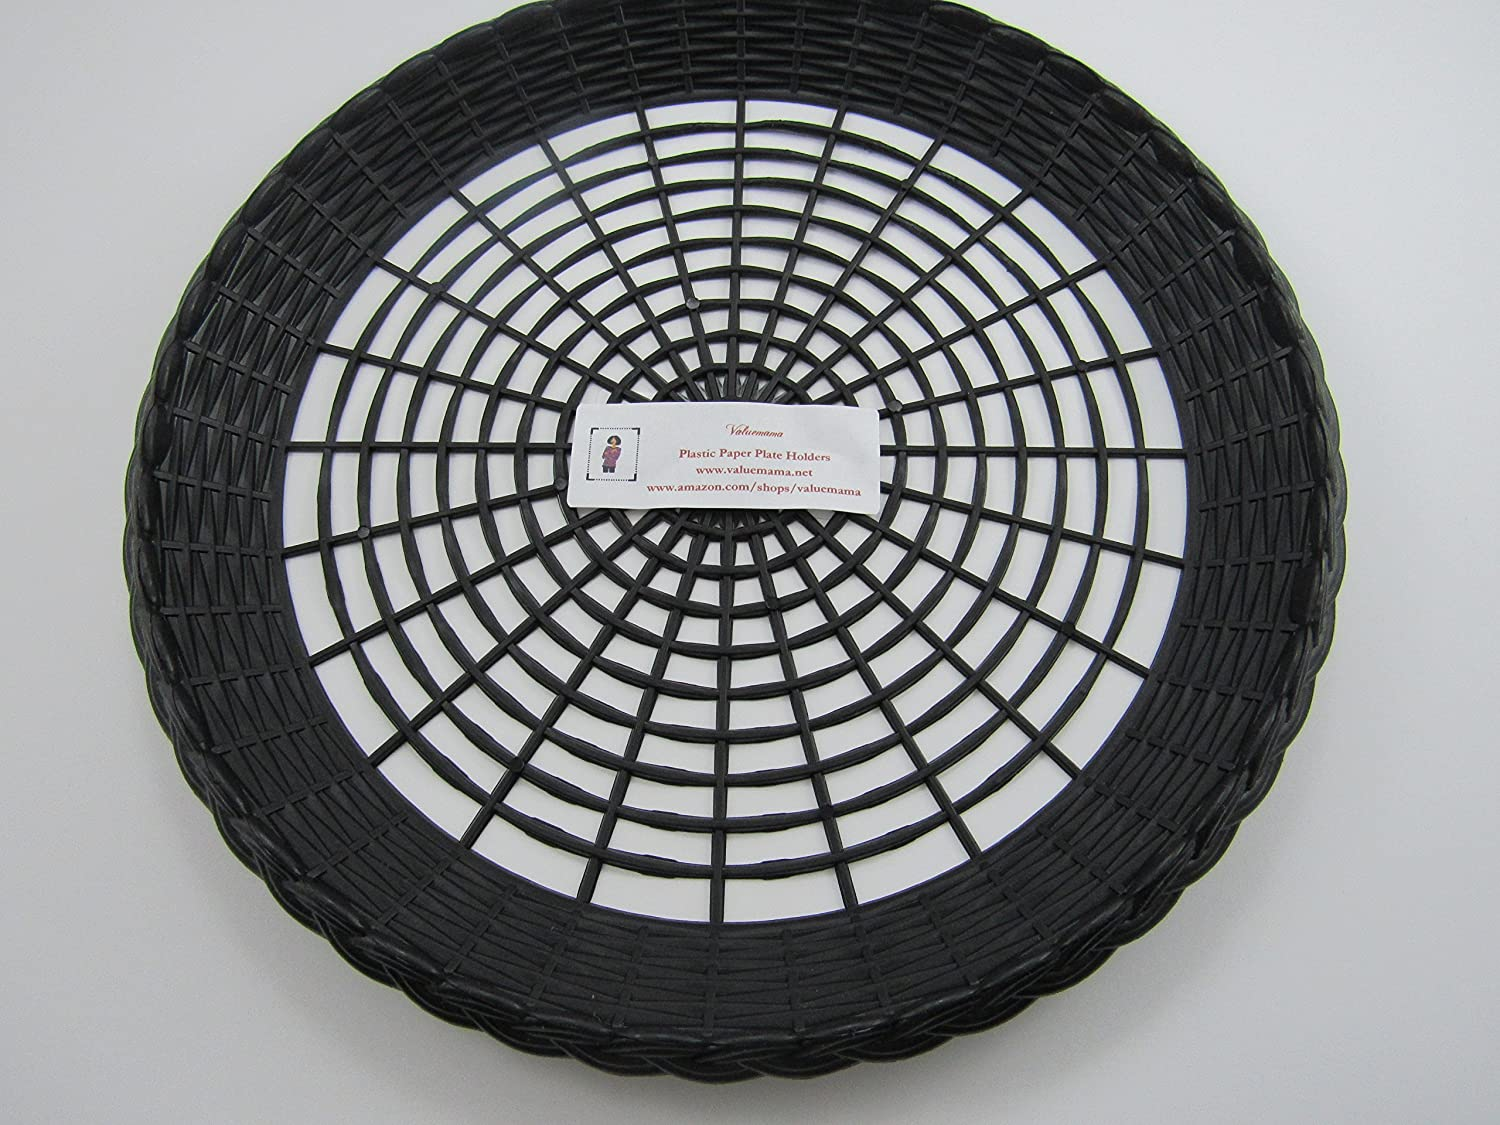 Amazon.com Reusable Black Plastic Paper Plate Holder for 9\  Plates Pack of 12 Health \u0026 Personal Care & Amazon.com: Reusable Black Plastic Paper Plate Holder for 9\